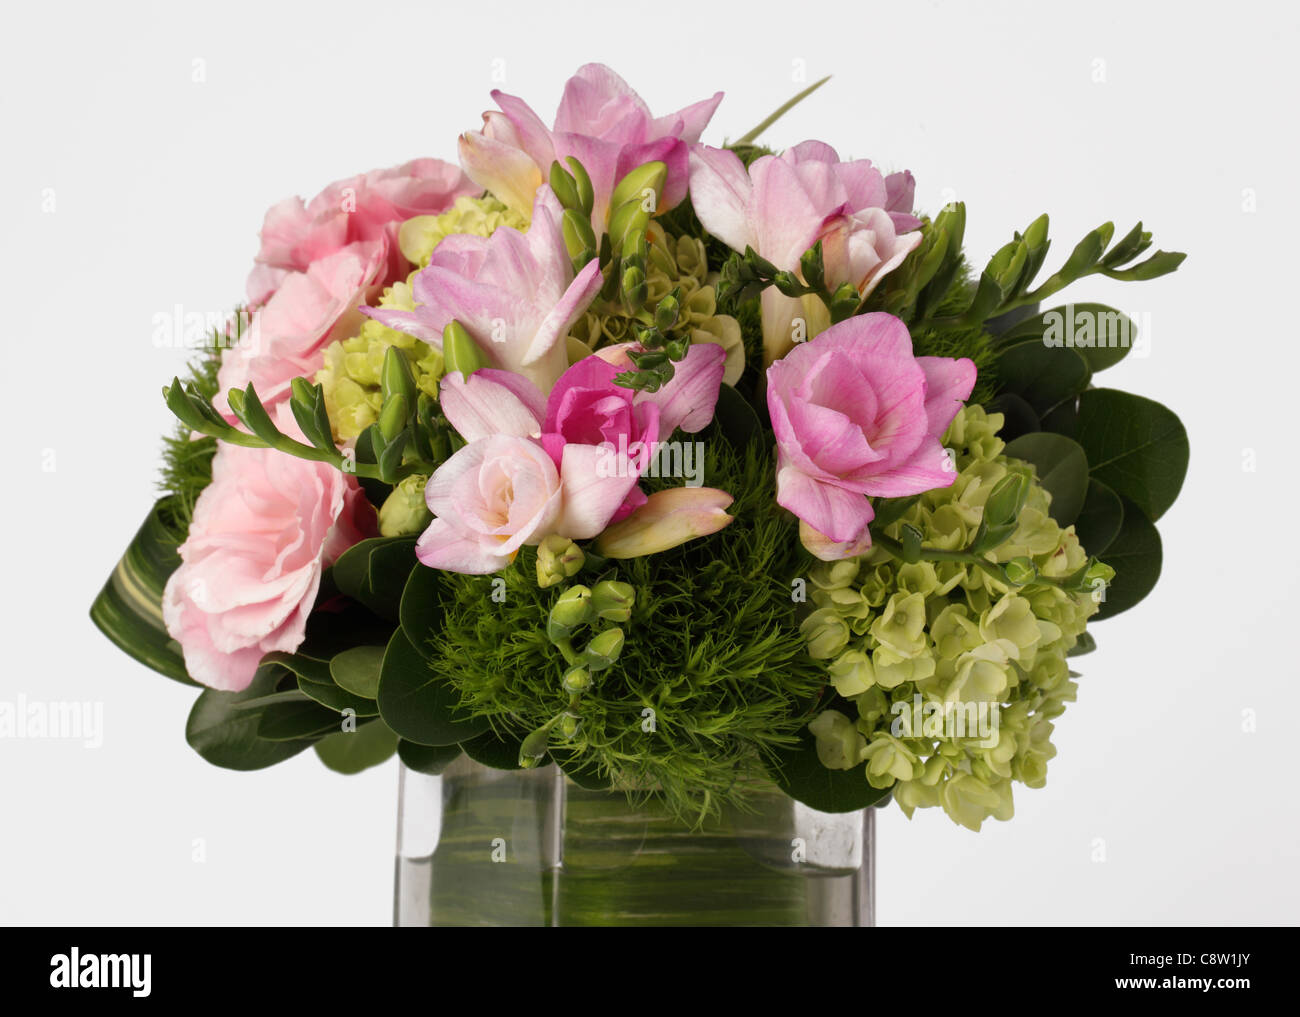 A close up of a colorful bouquet of flowers in a vase pink freesias a close up of a colorful bouquet of flowers in a vase pink freesias green hydrangeas izmirmasajfo